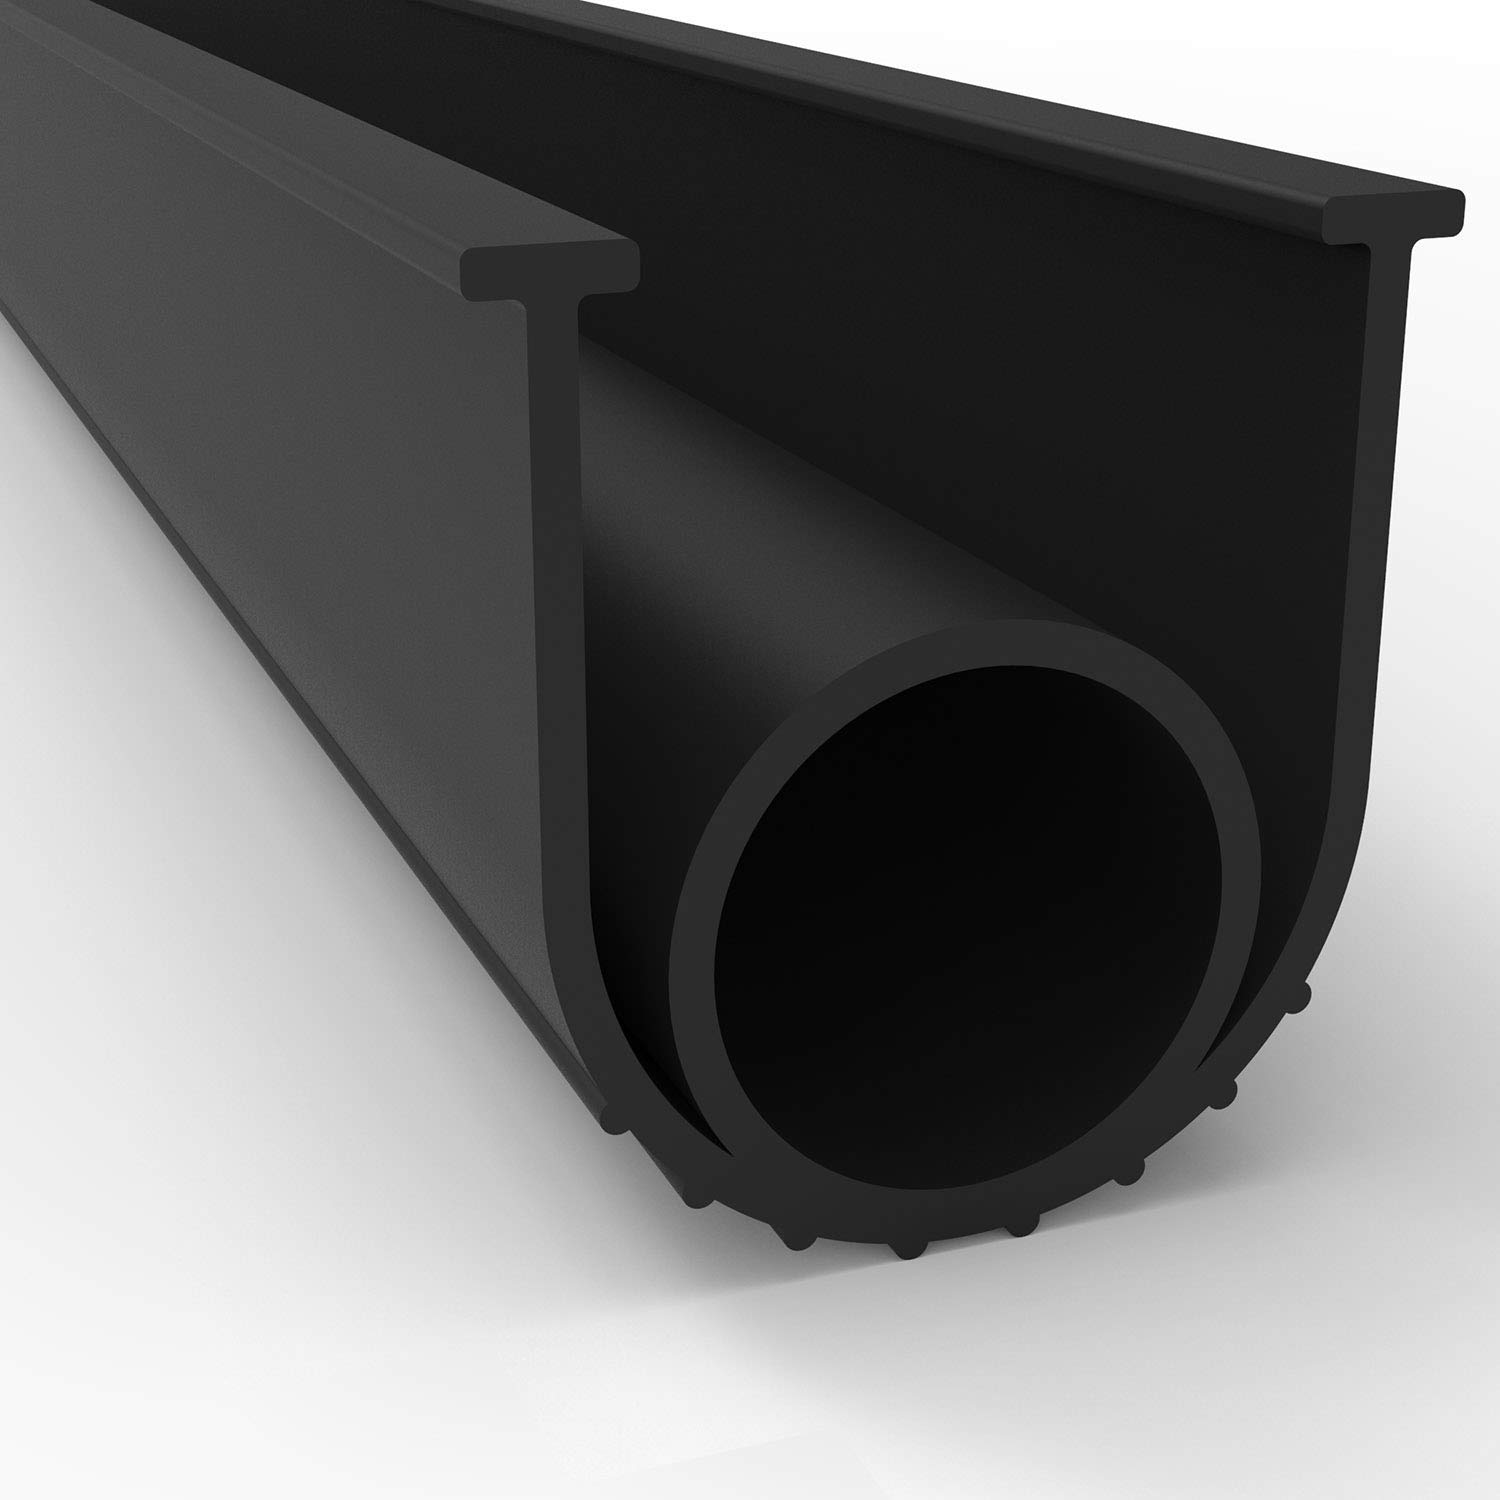 BOWSEN Garage Door Seals Bottom Rubber Weatherproof Threshold Buffering Replacement Black 1/4 Inch T-End,16ft Long